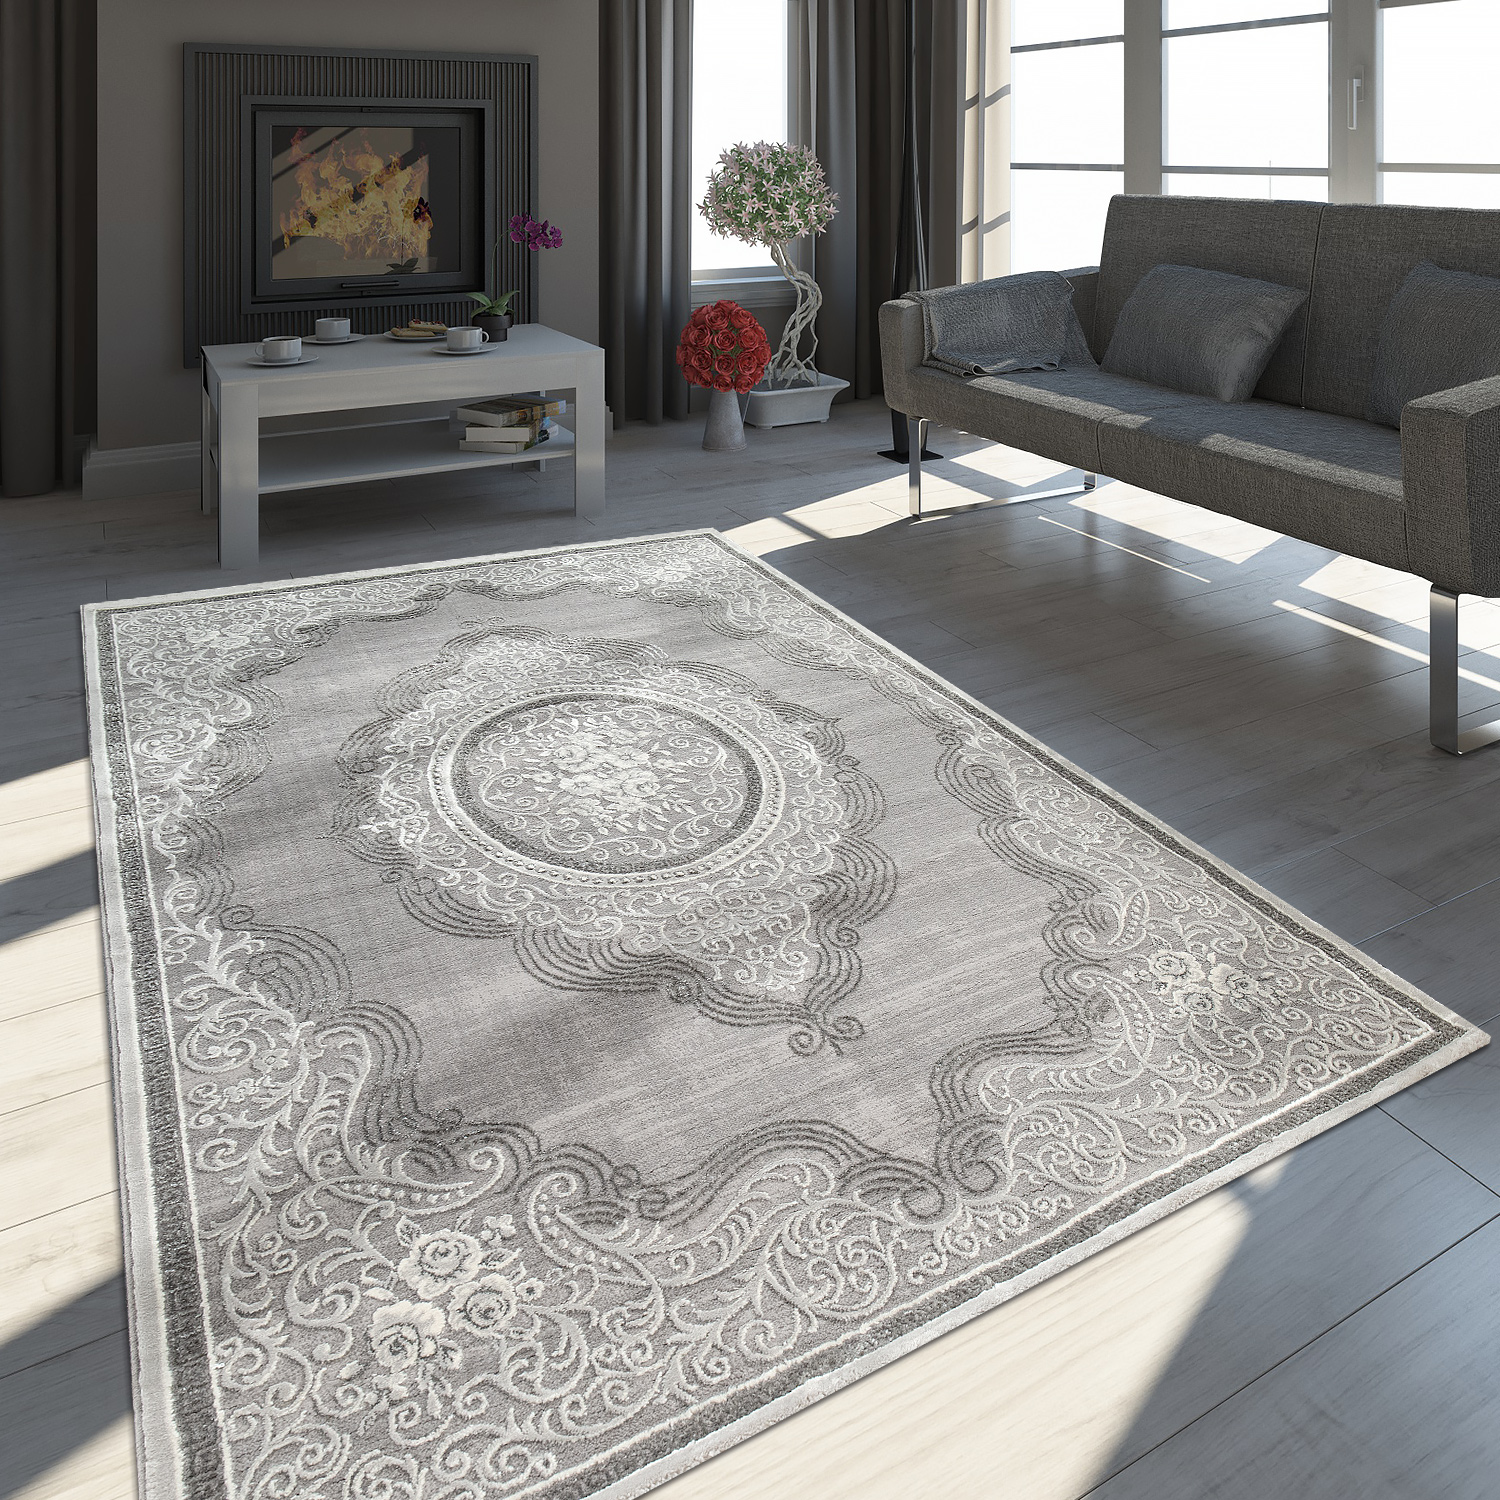 tapis oriental moderne effet 3d chin scintillant ornements bordures gris blanc tapis optique. Black Bedroom Furniture Sets. Home Design Ideas